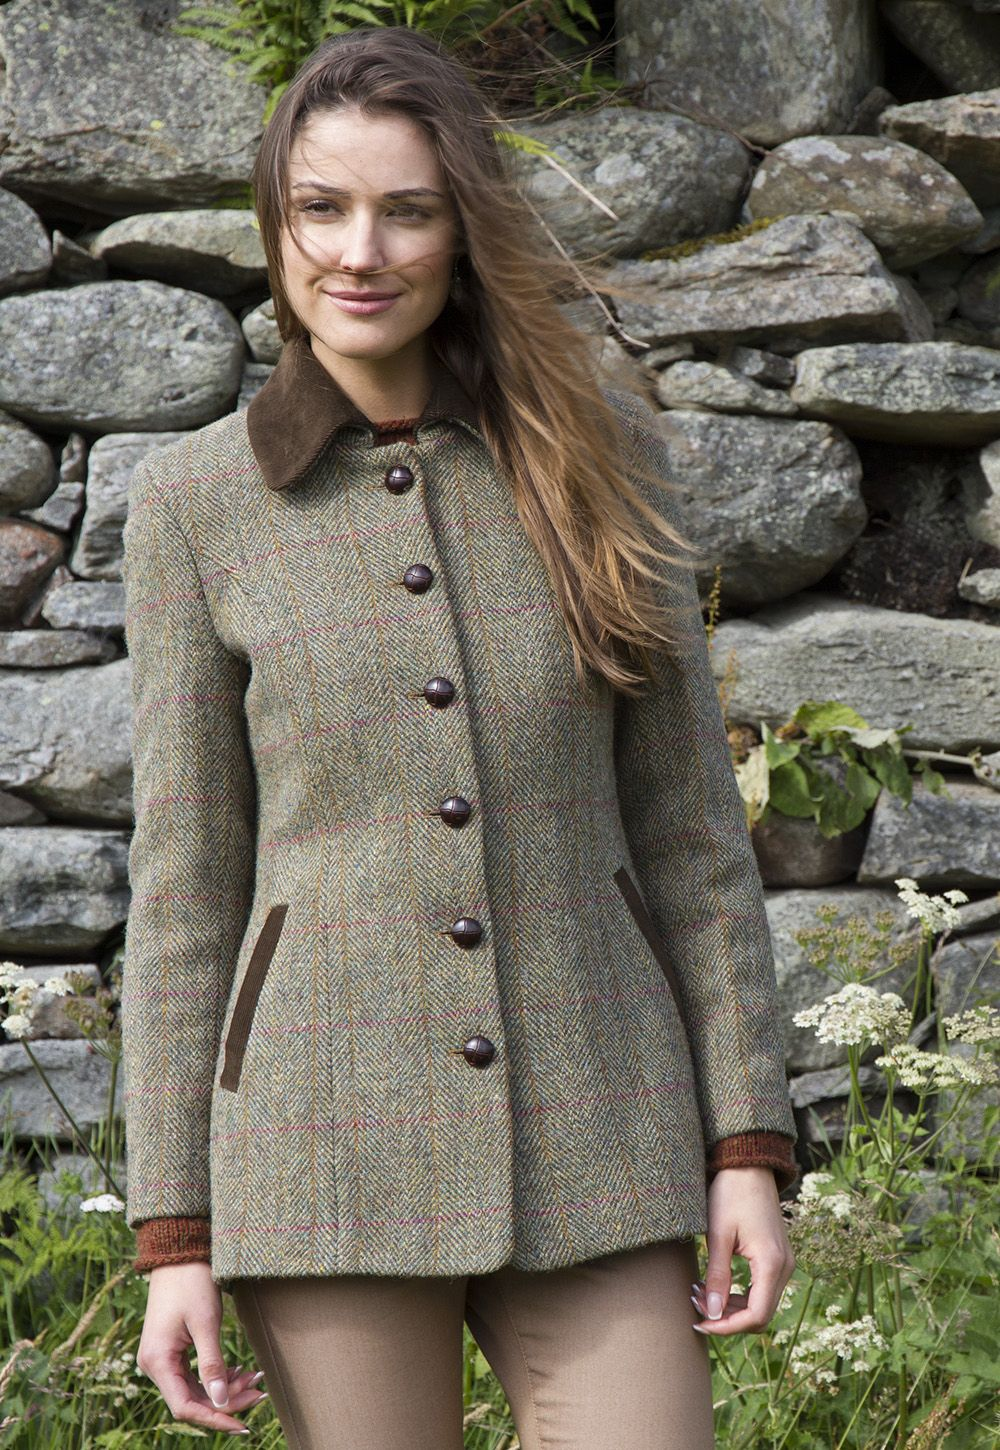 Harris Tweed Lottie jacket in soft green tweed with corduroy trim ...